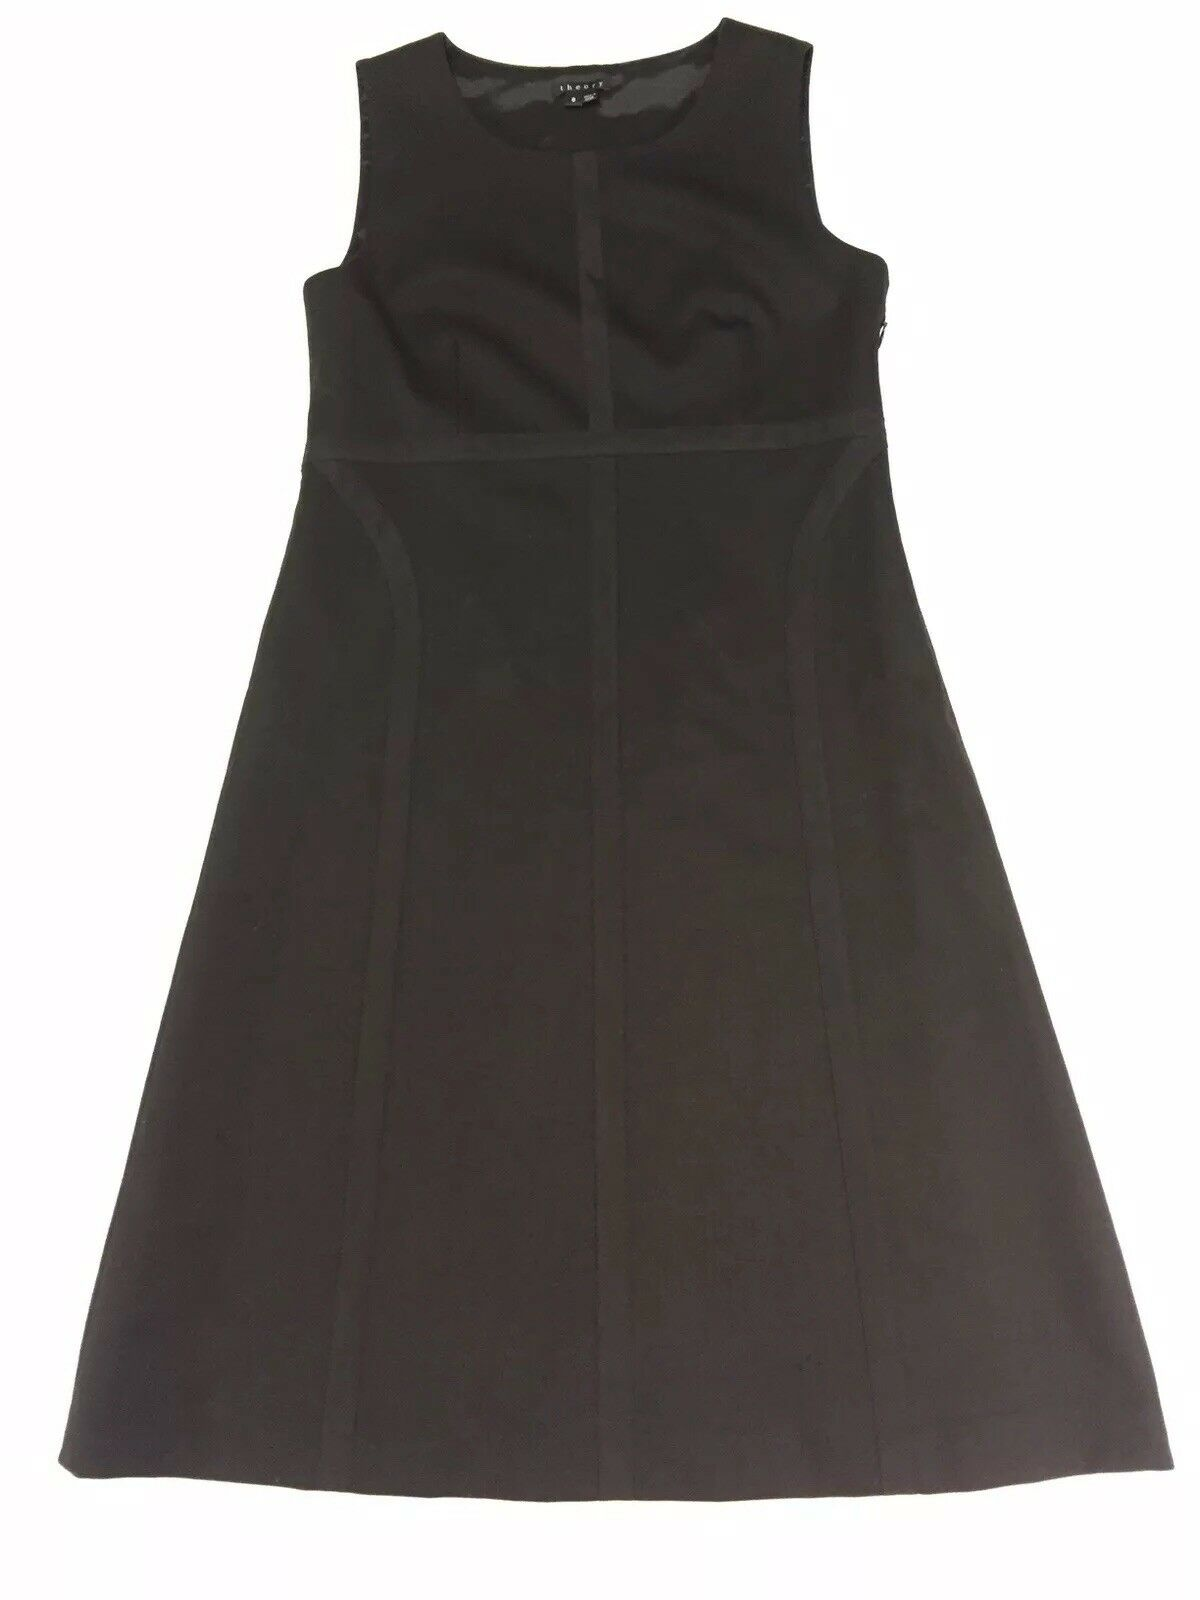 Theory Wool Shift Stretch Dress Größe 8 damen's schwarz Sleeveless Midi